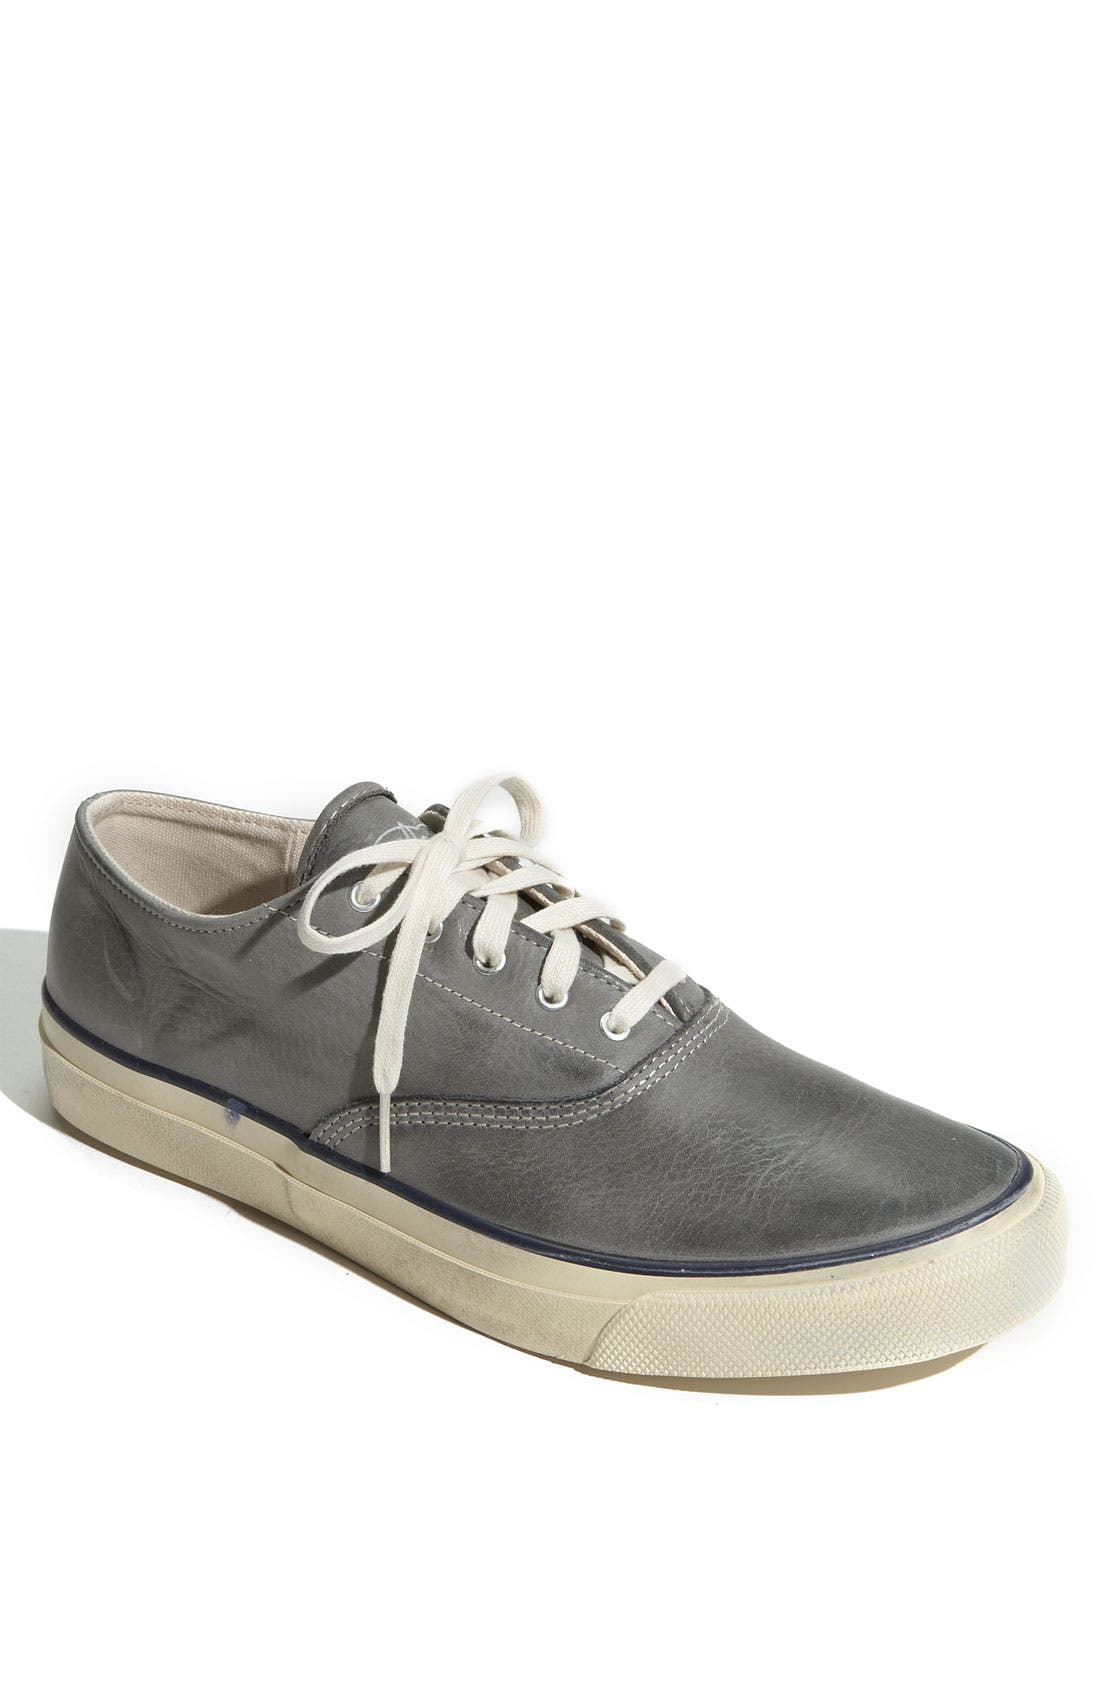 Main Image - Sperry Top-Sider® 'CVO' Burnished Sneaker